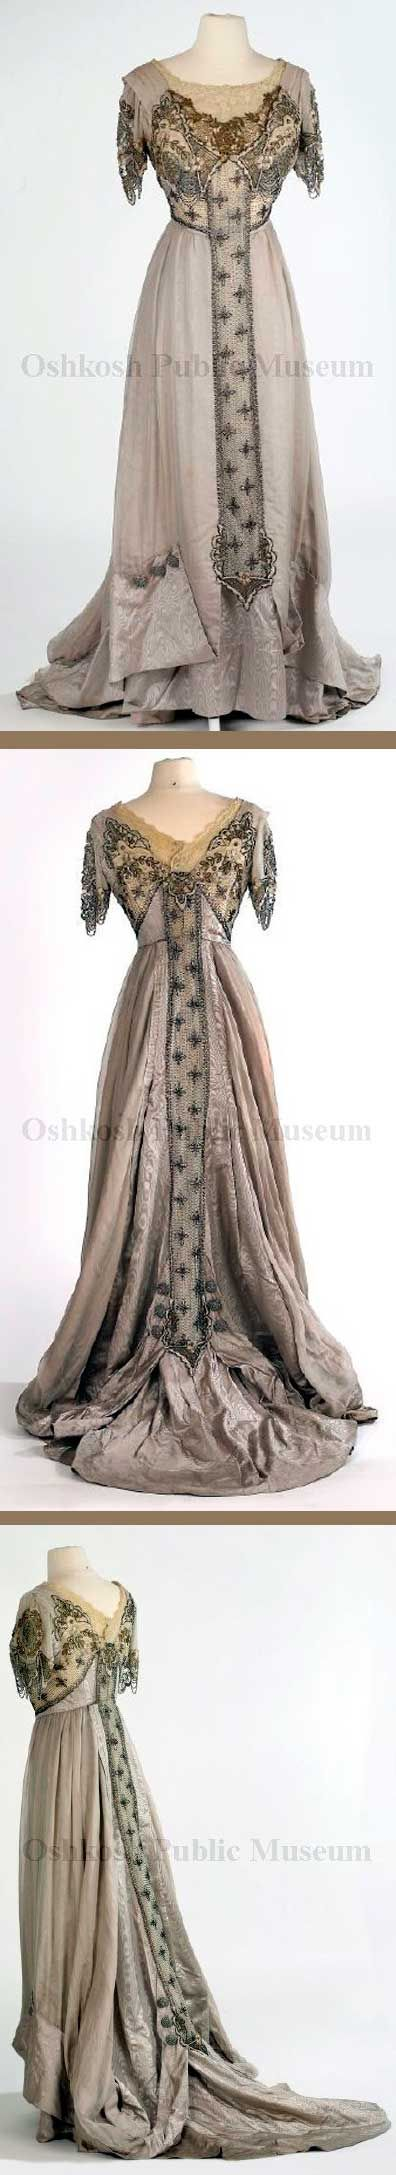 Gown, ca. 1905-1910. Gray moiré silk with overskirt of iridescent pink/gray chiffon that folds up at hem with 3 large buttons made of strands of silver beads. Neckline inset of off-white embroidered lace and gold lace. Bodice decorated on both sides with layers of gold, silver, and pearl beads and gold sequins. Oshkosh Public Museum. jαɢlαdy